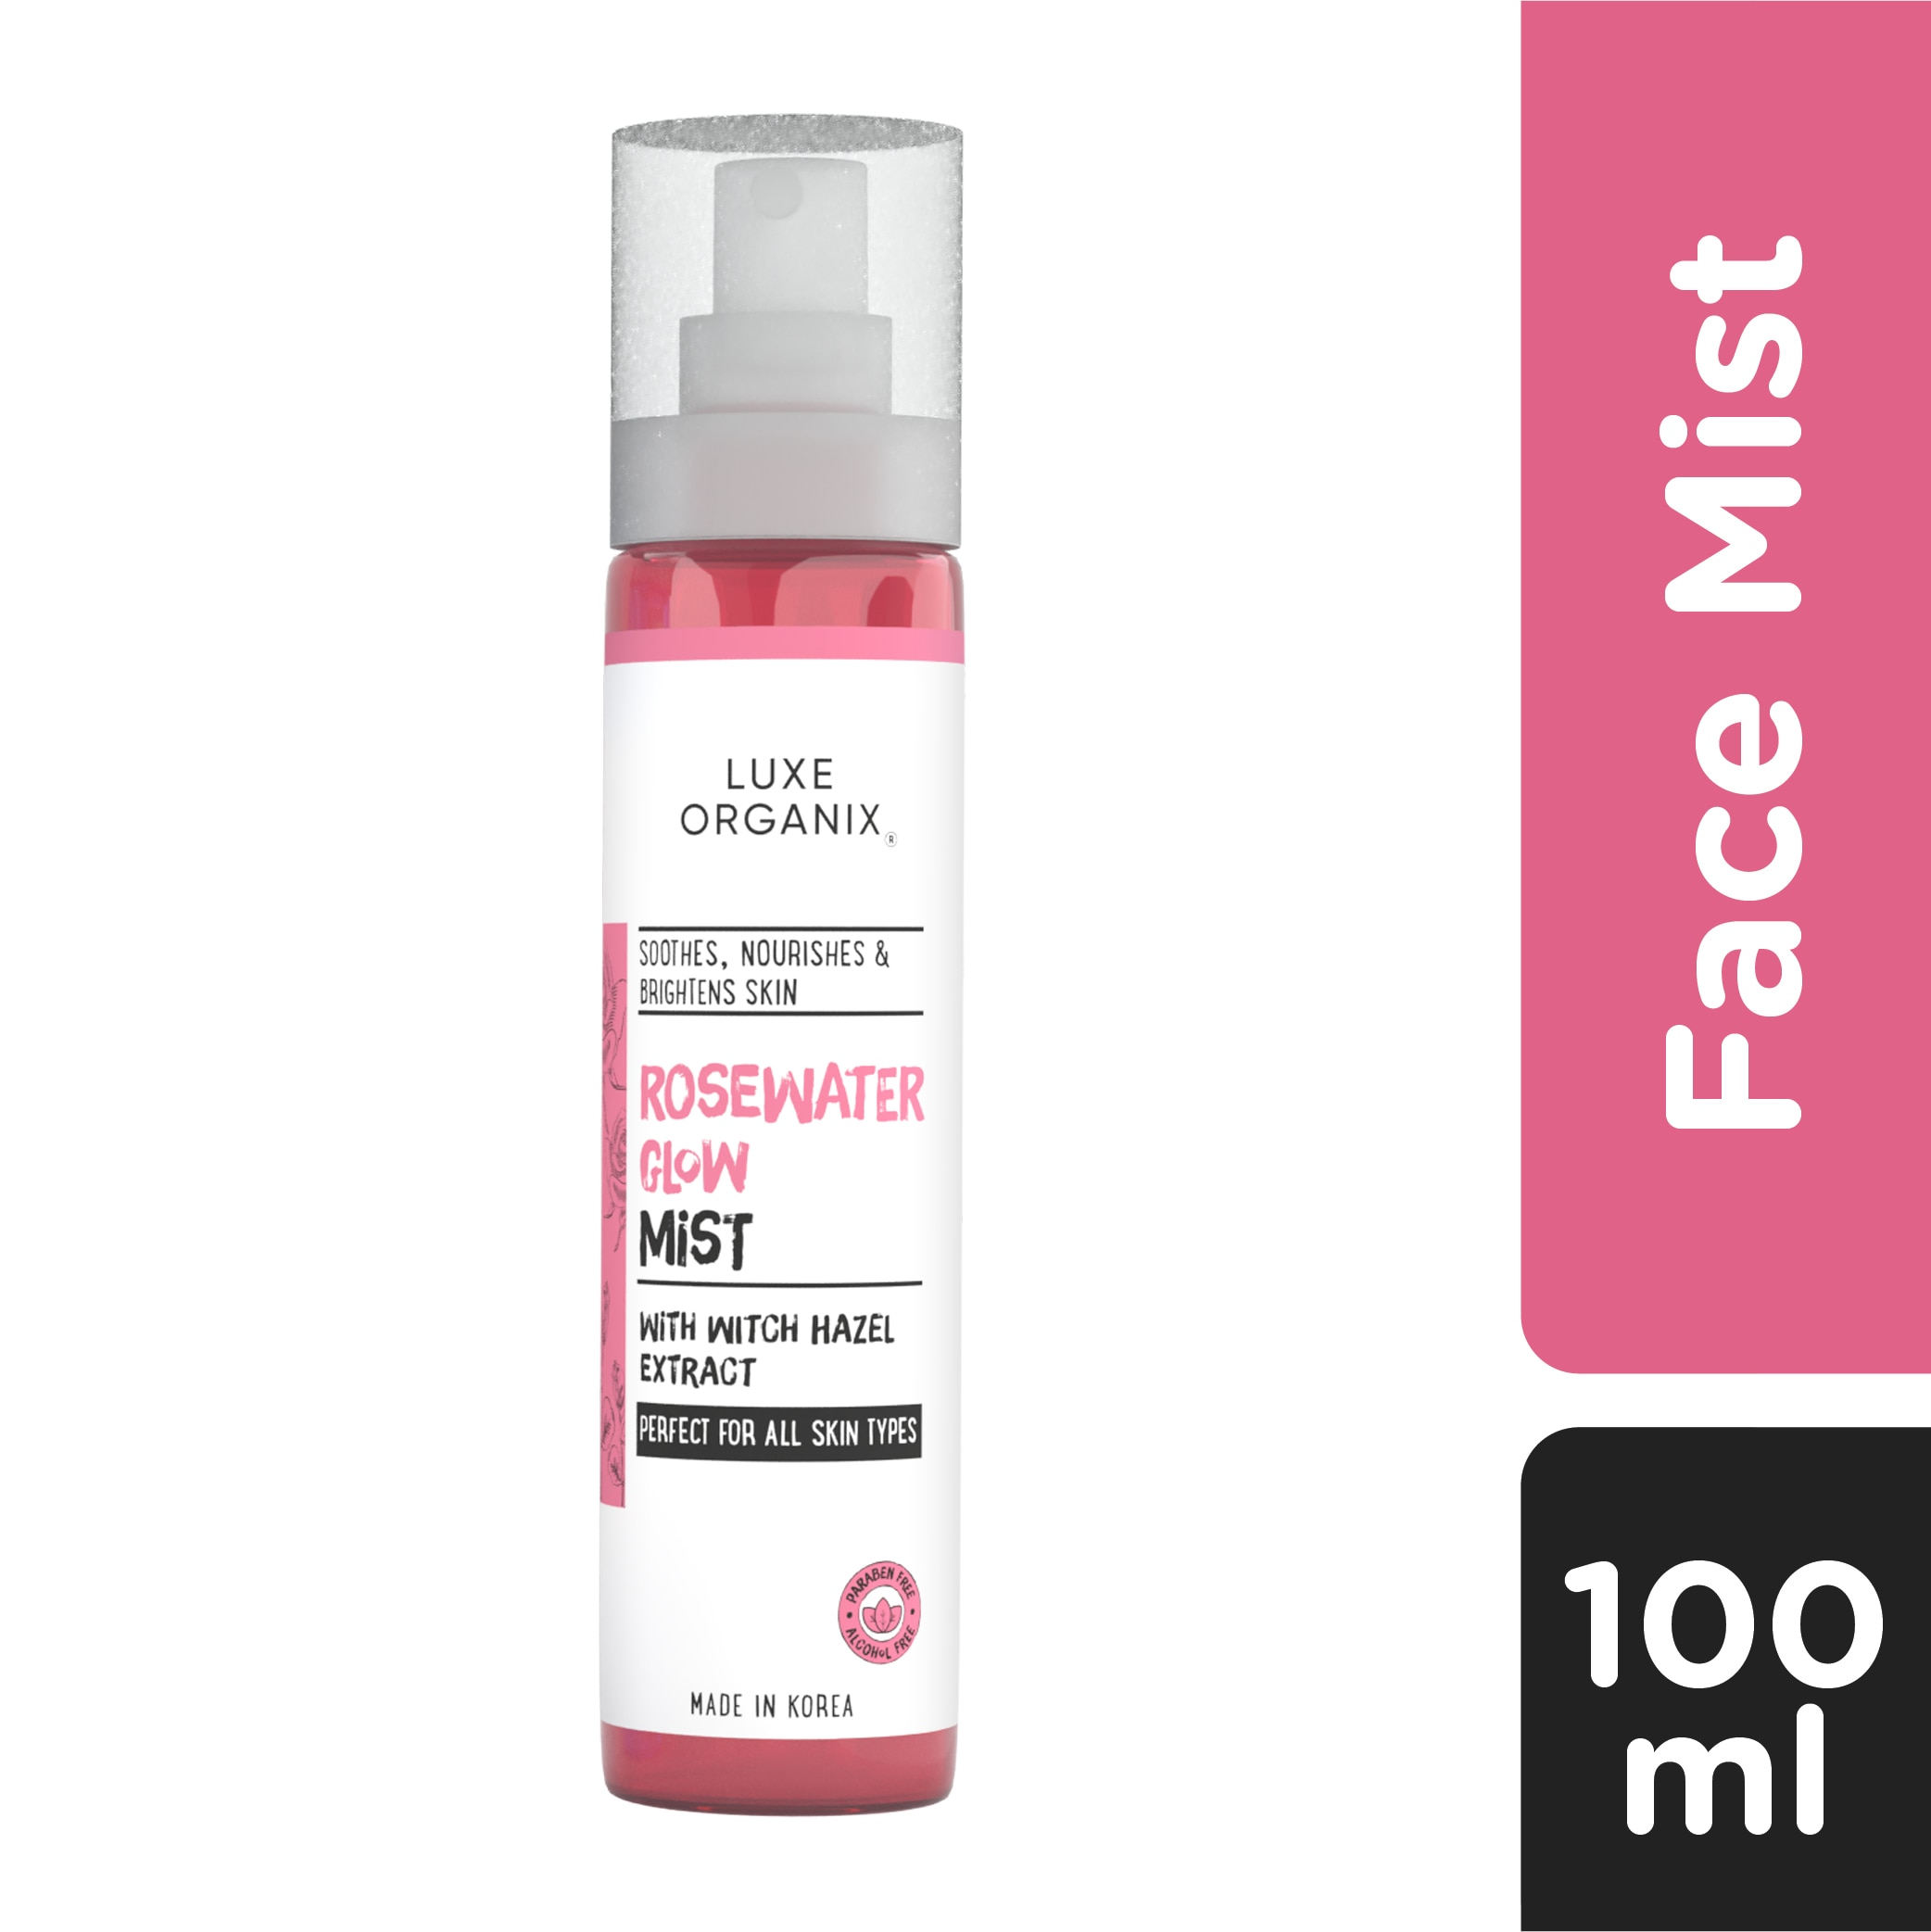 LUXE ORGANIXLuxe Organix Rosewater Glow Mist with Witch Hazel Extract 100ml,Facial MistClean Beauty